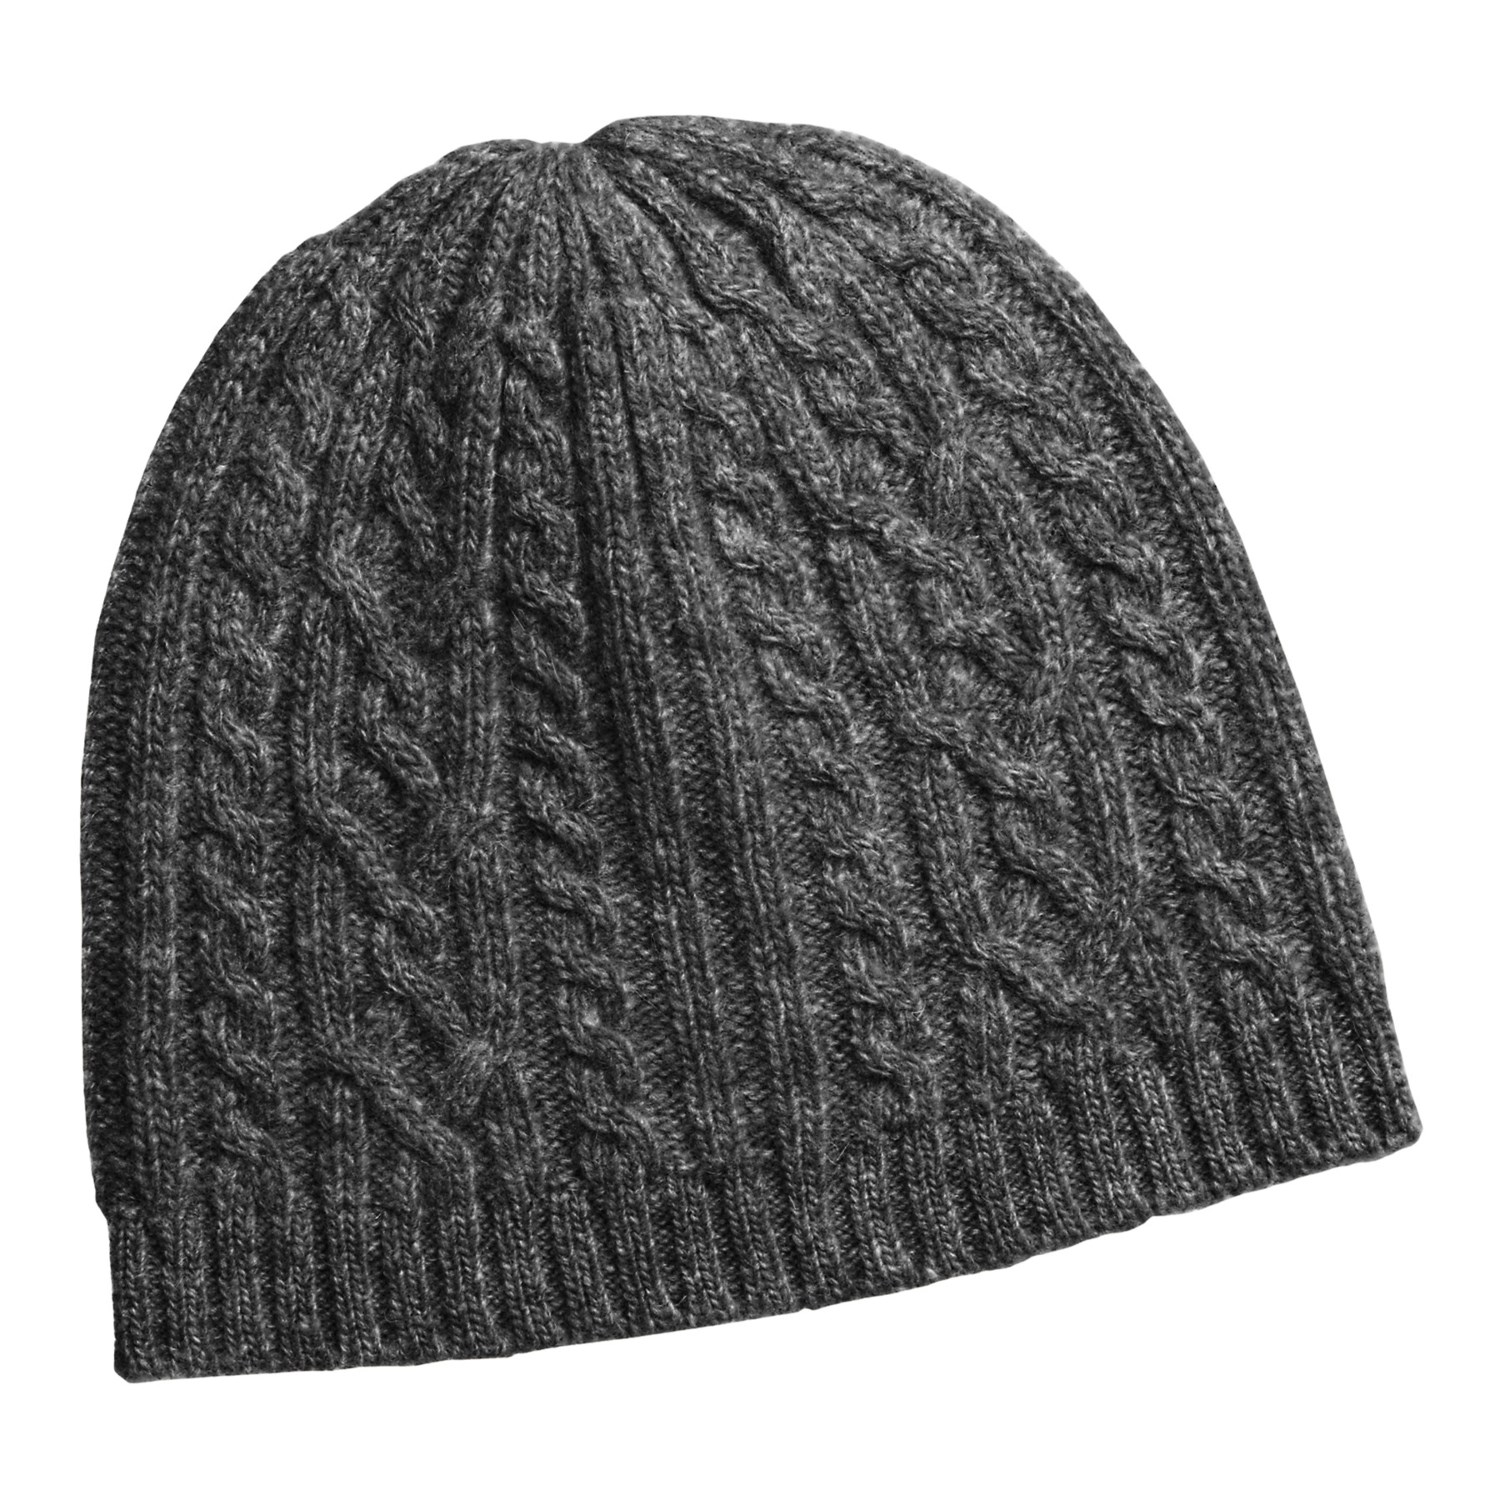 Knit Hat : Auclair Cable-Knit Beanie Hat - Merino Wool (For Women) in Charcoal